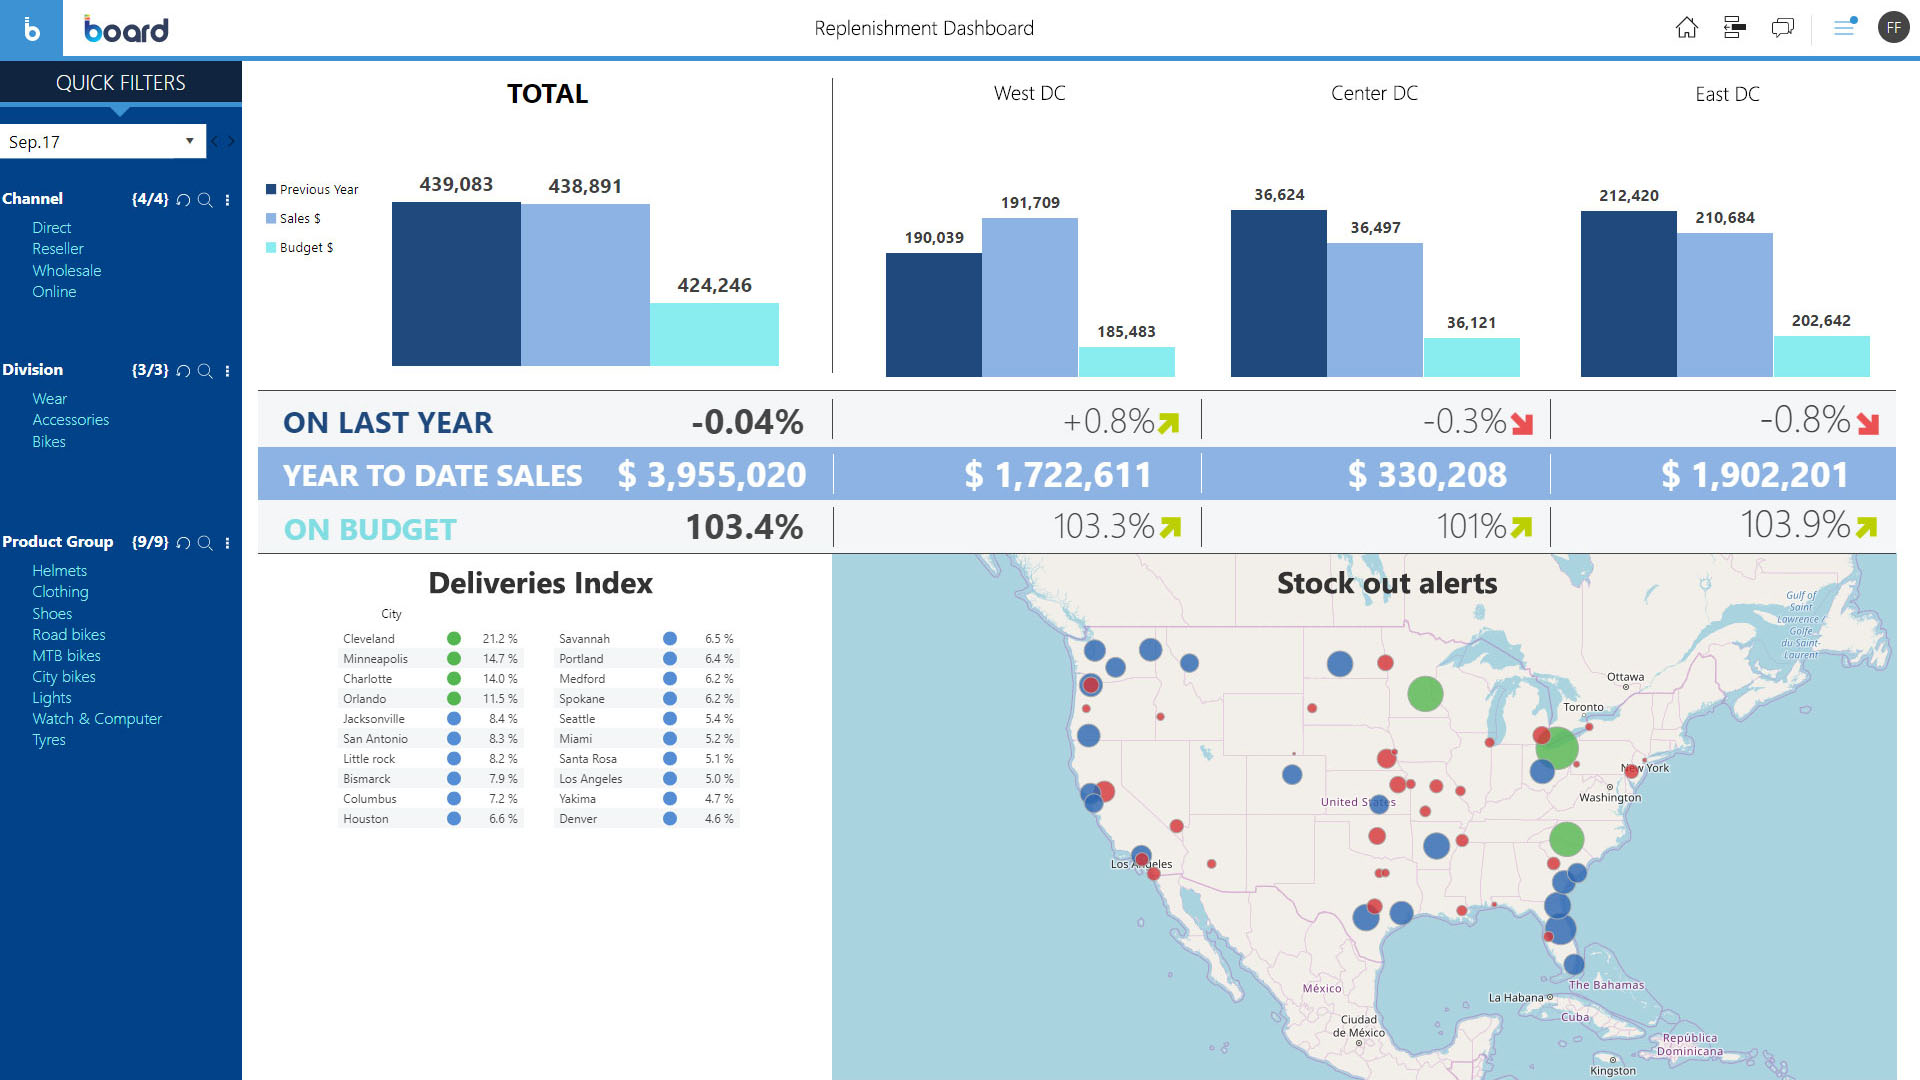 Replenishment dashboard for total control of store's stock and DC